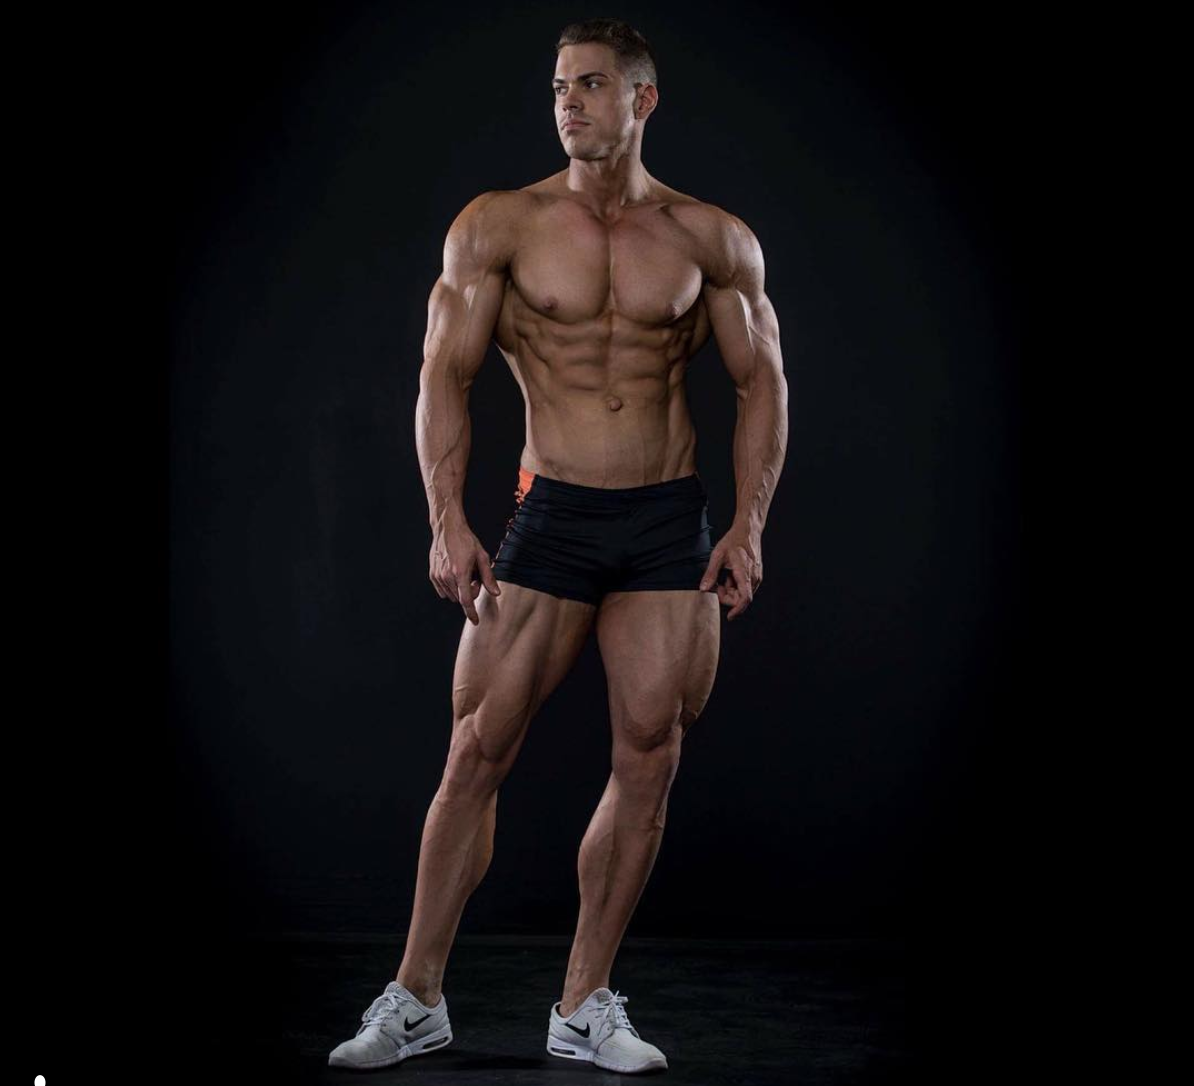 Sam Grachan WBFF Pro: Trialling A Vegan Diet